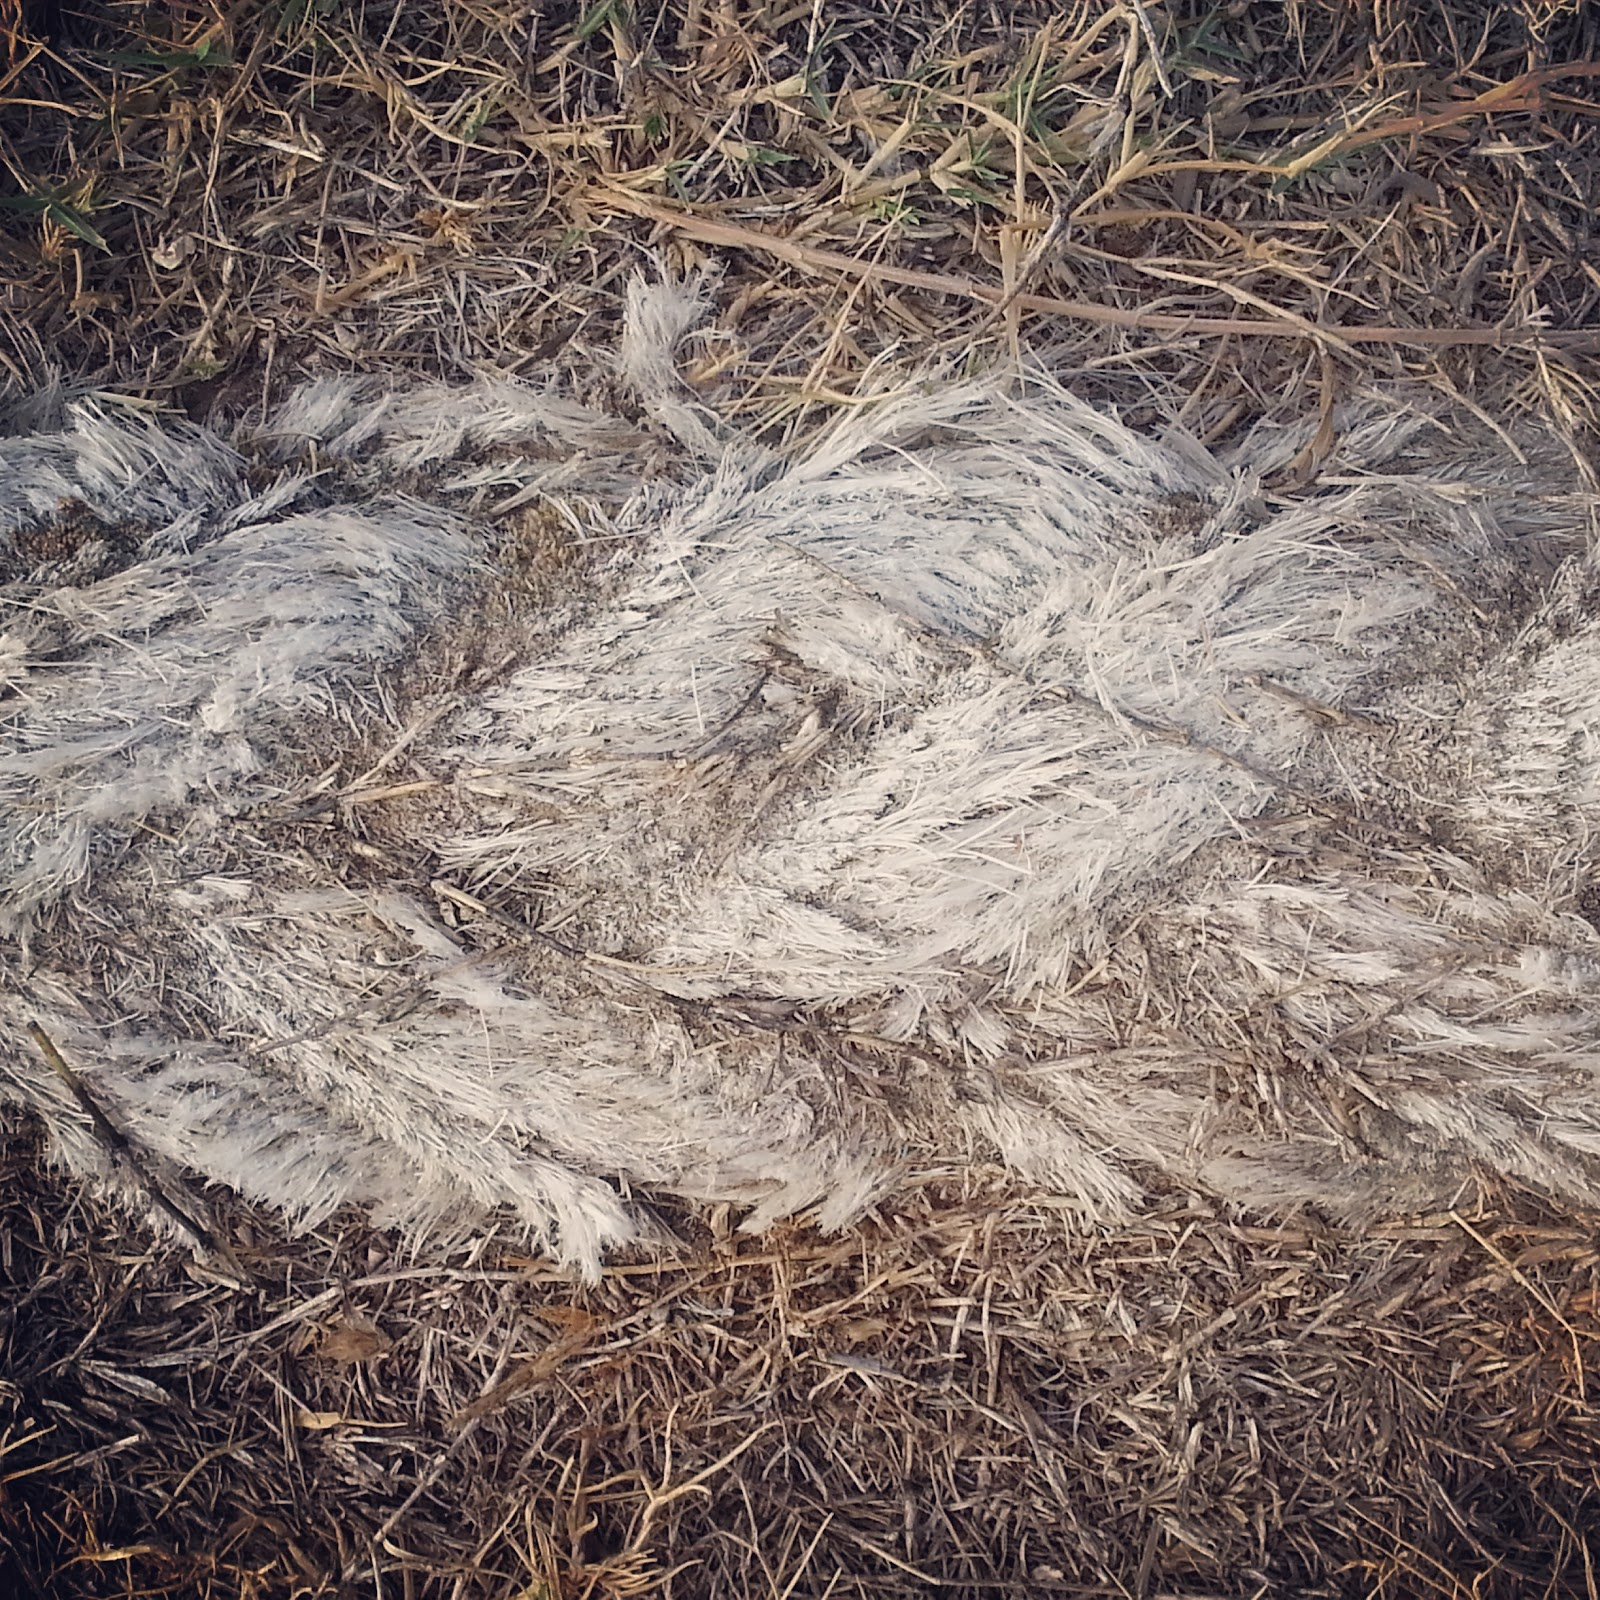 image of an old weathered nautical rope on a dry sunburnt lawn